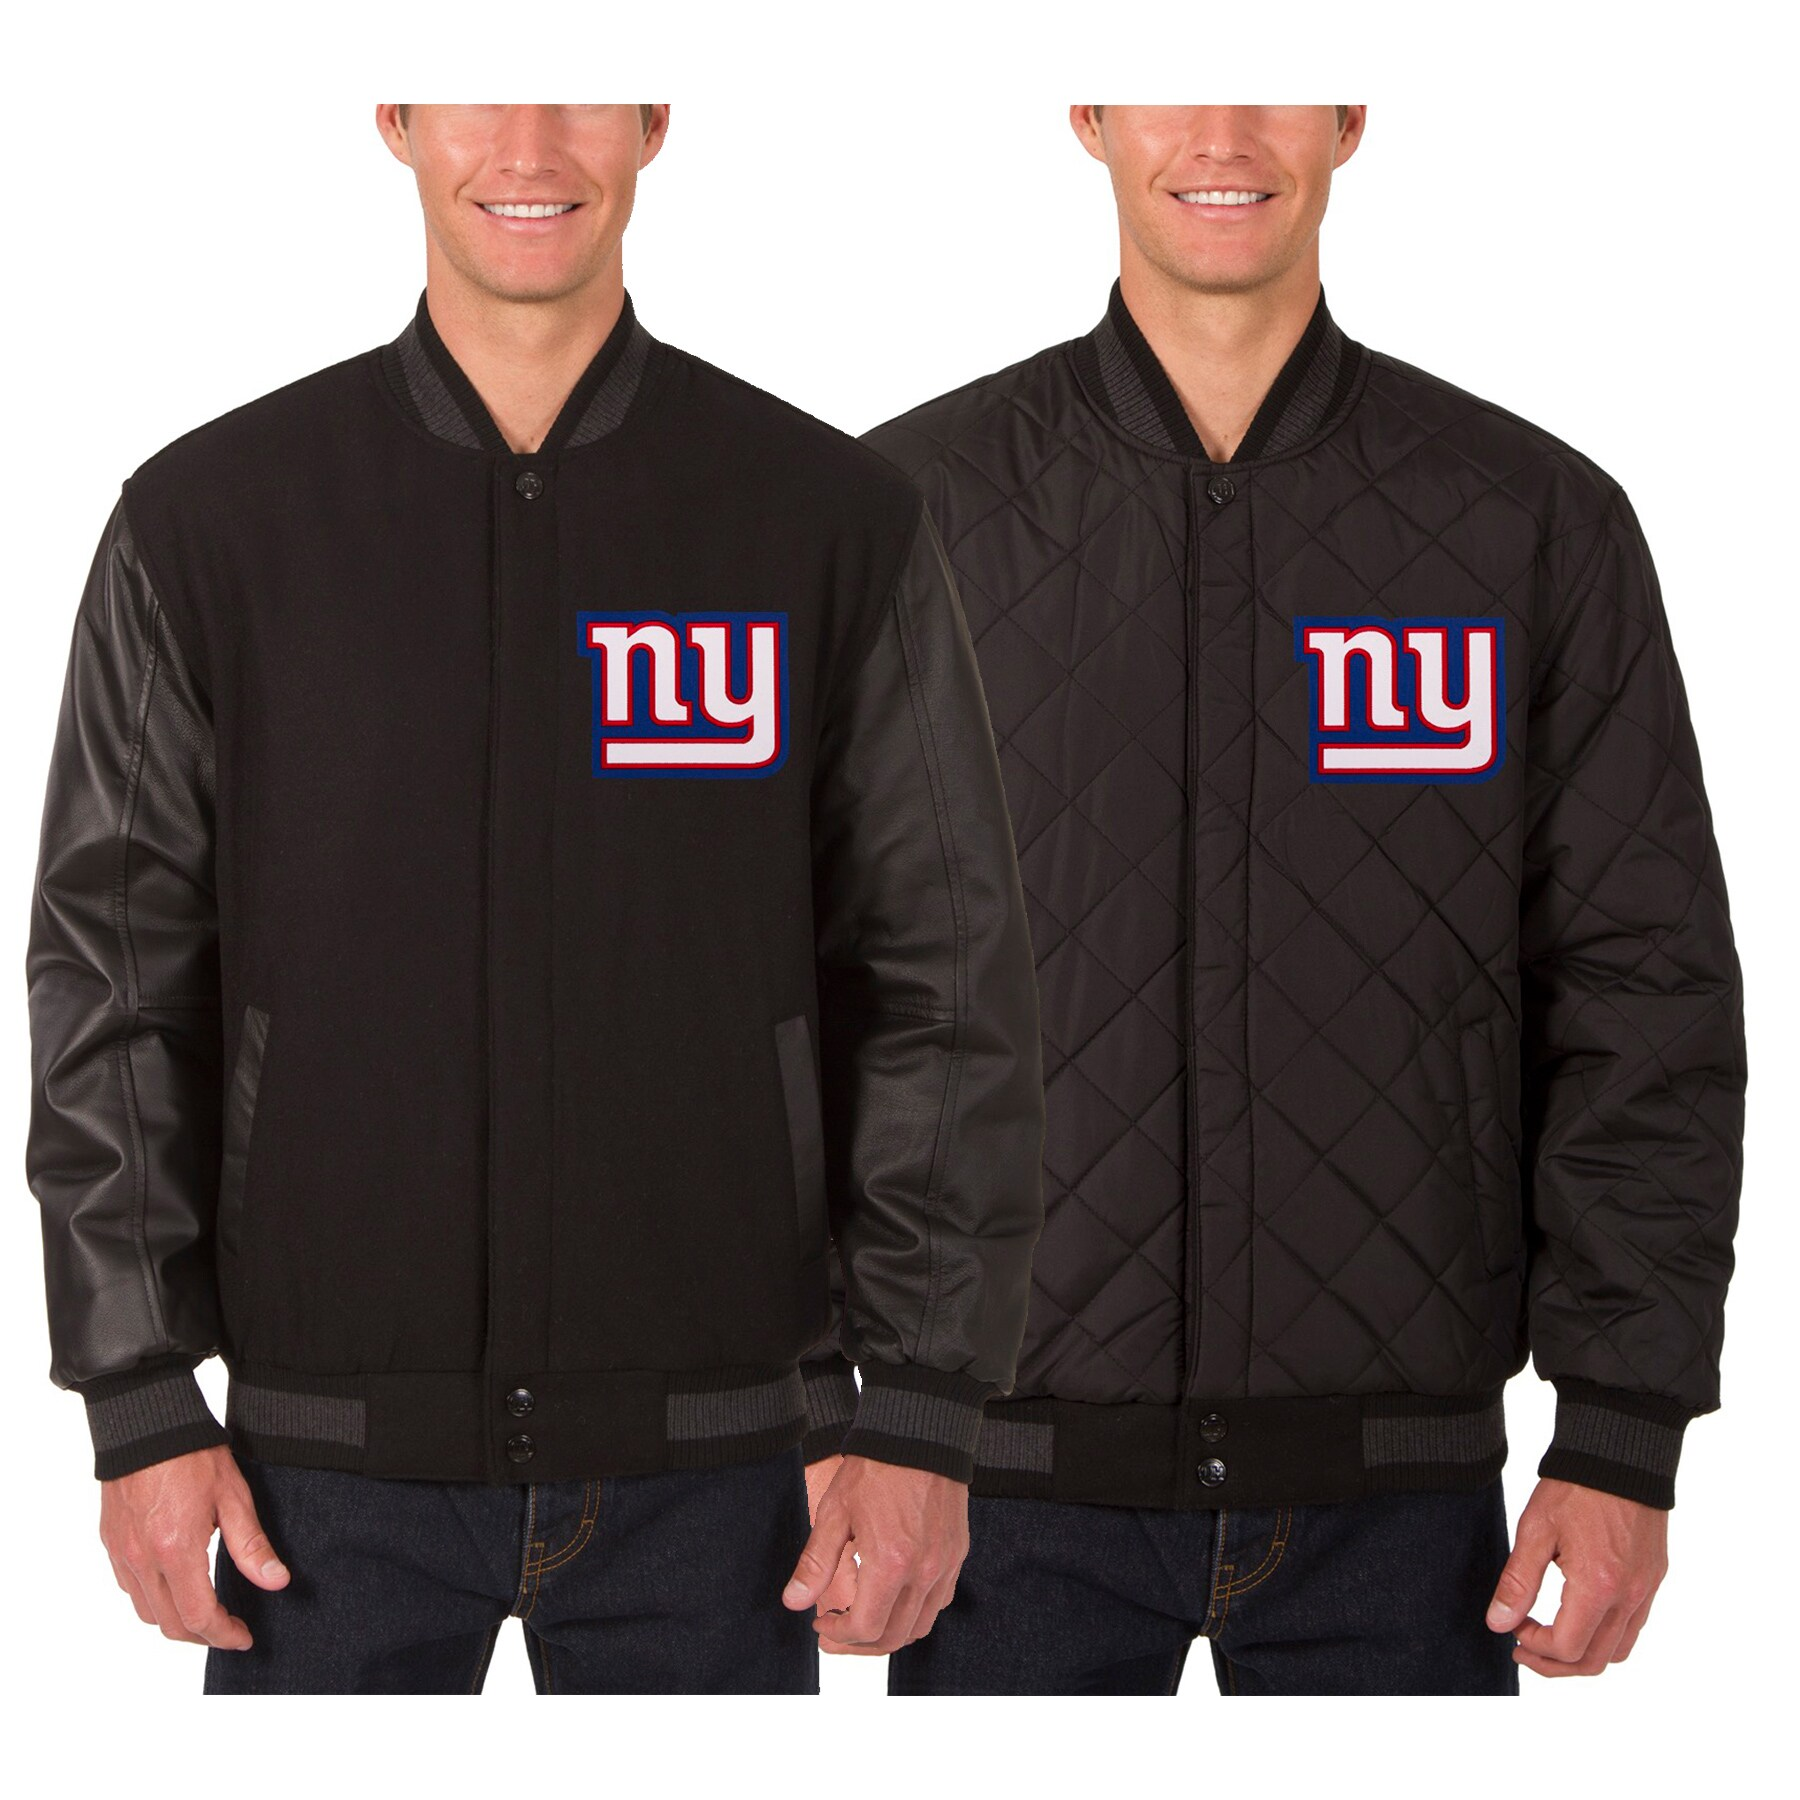 New York Giants JH Design Wool & Leather Reversible Jacket with Embroidered Logos - Black